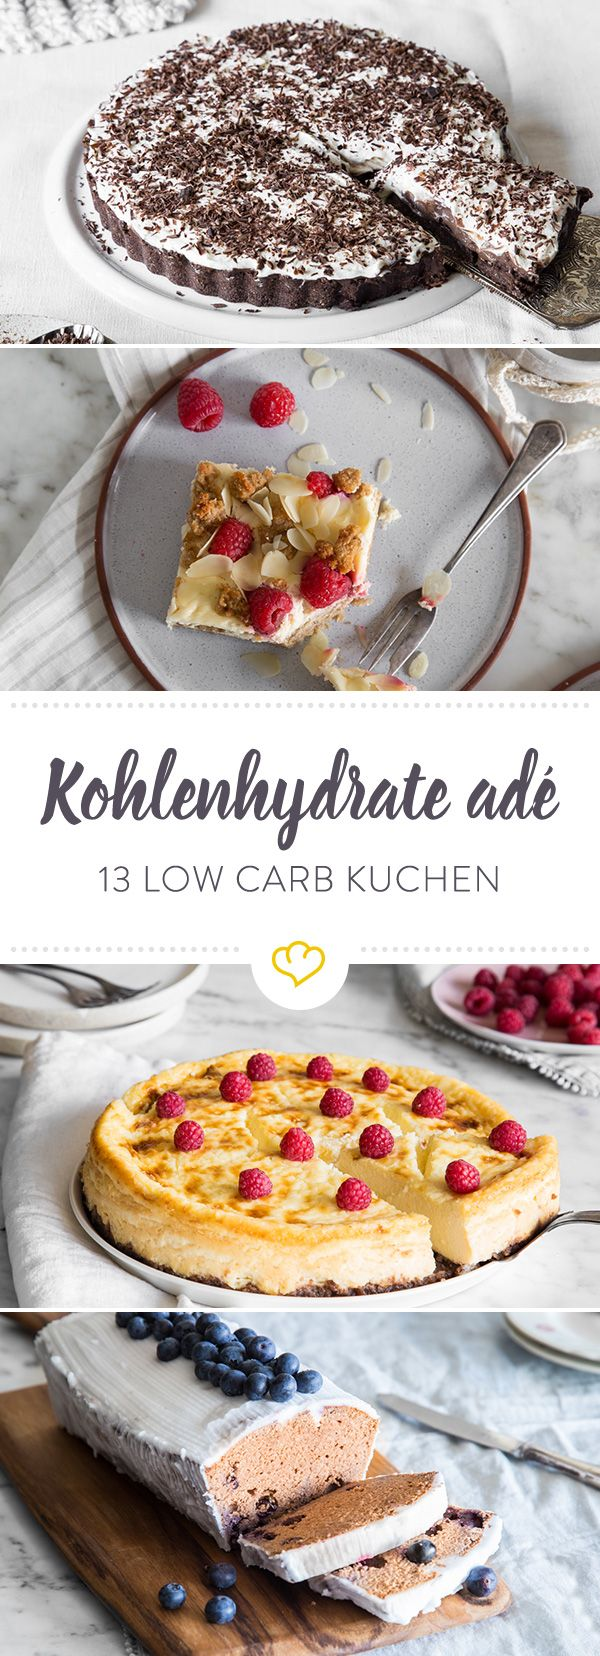 the 68 best images about low carb on pinterest | pizzas, easy ... - Low Carb Küche